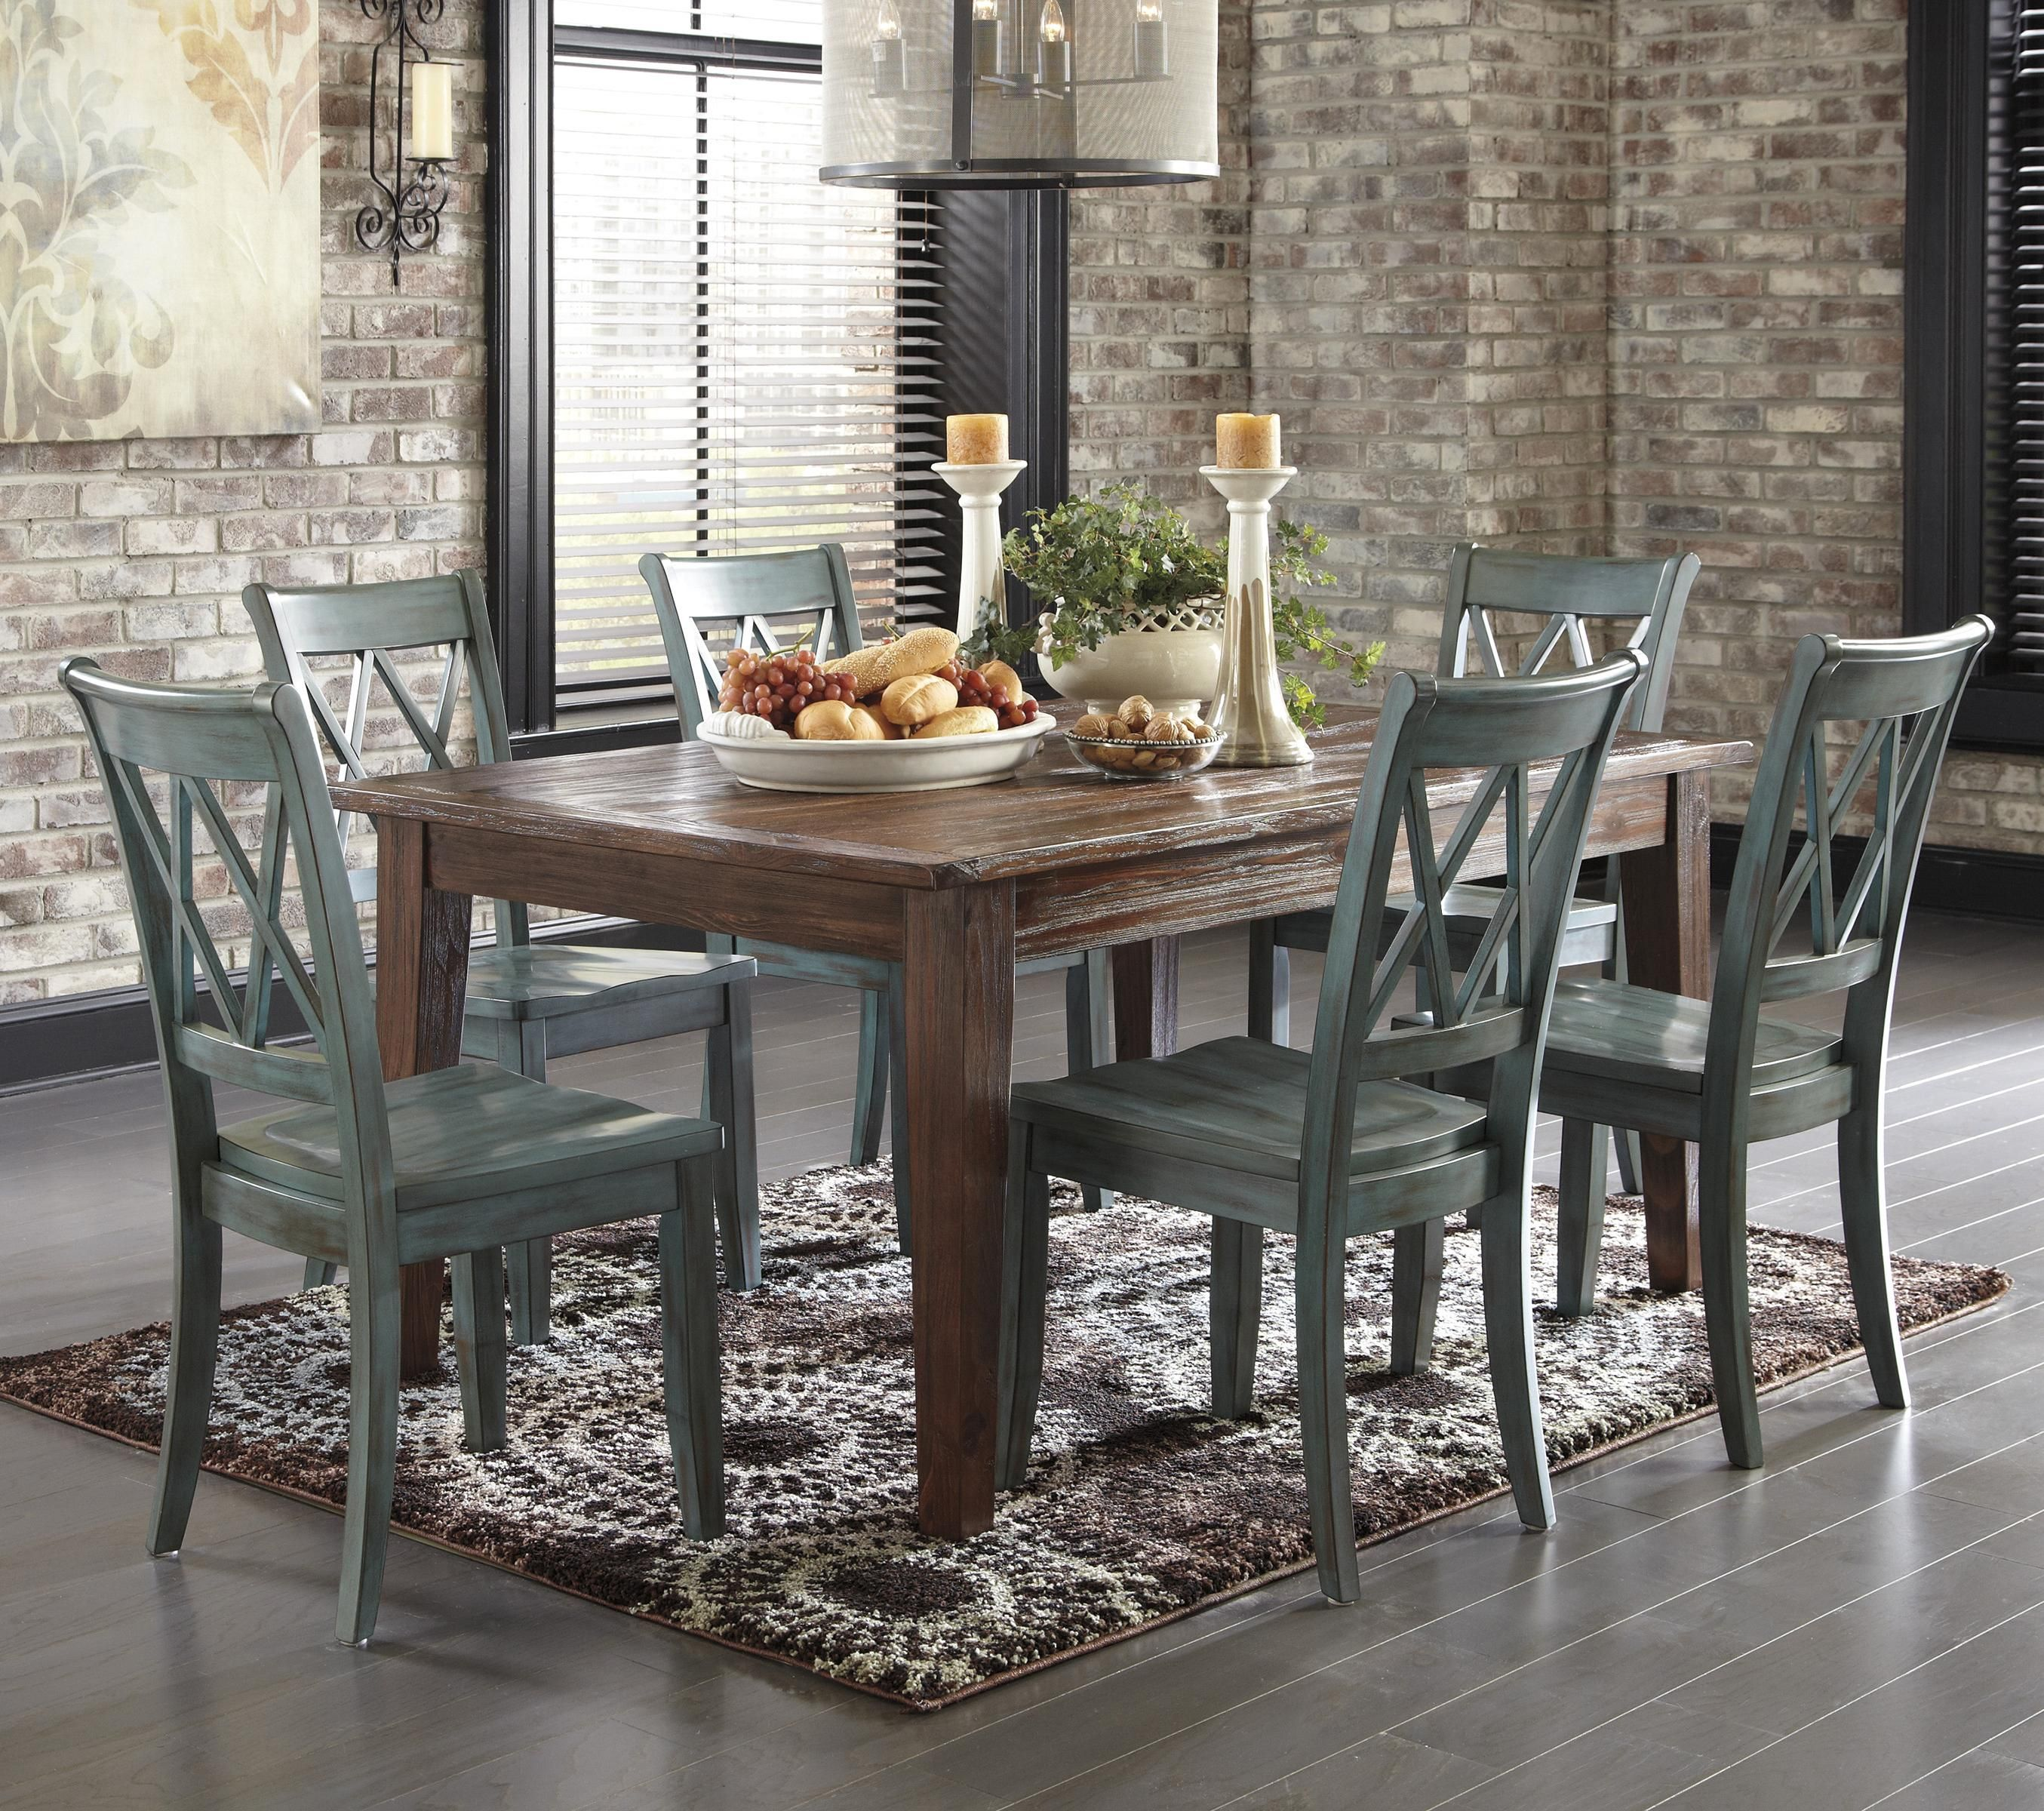 Blue Kitchen Table Set: Mestler 7-Piece Table Set With Antique Blue Chairs By